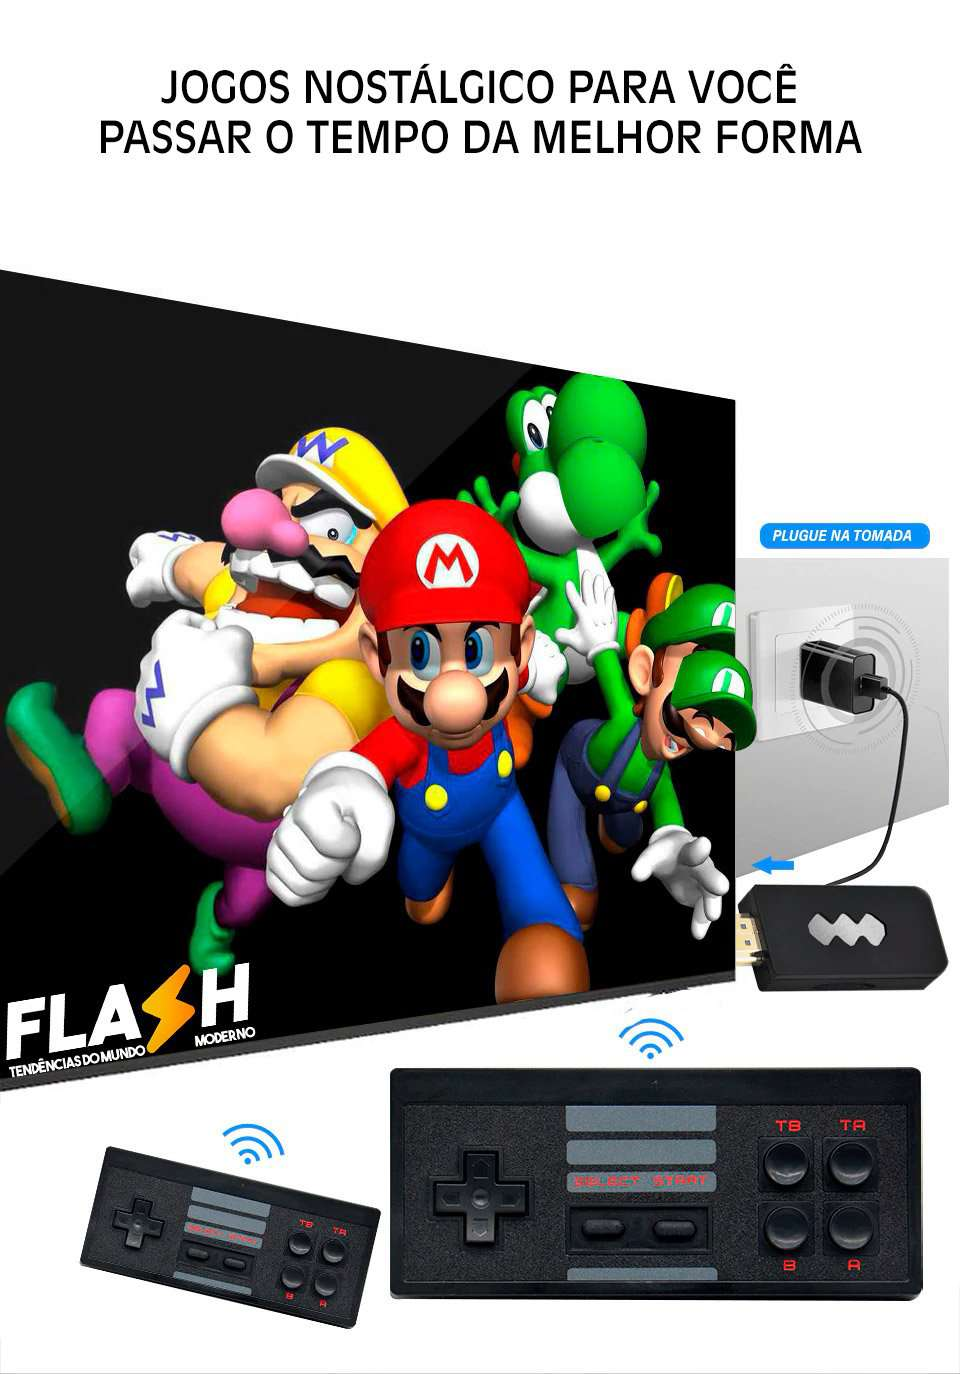 Mini Vídeo Game Retro PenDrive HDMI 568 Jogos 4k + 2 Controles - Loja Flash